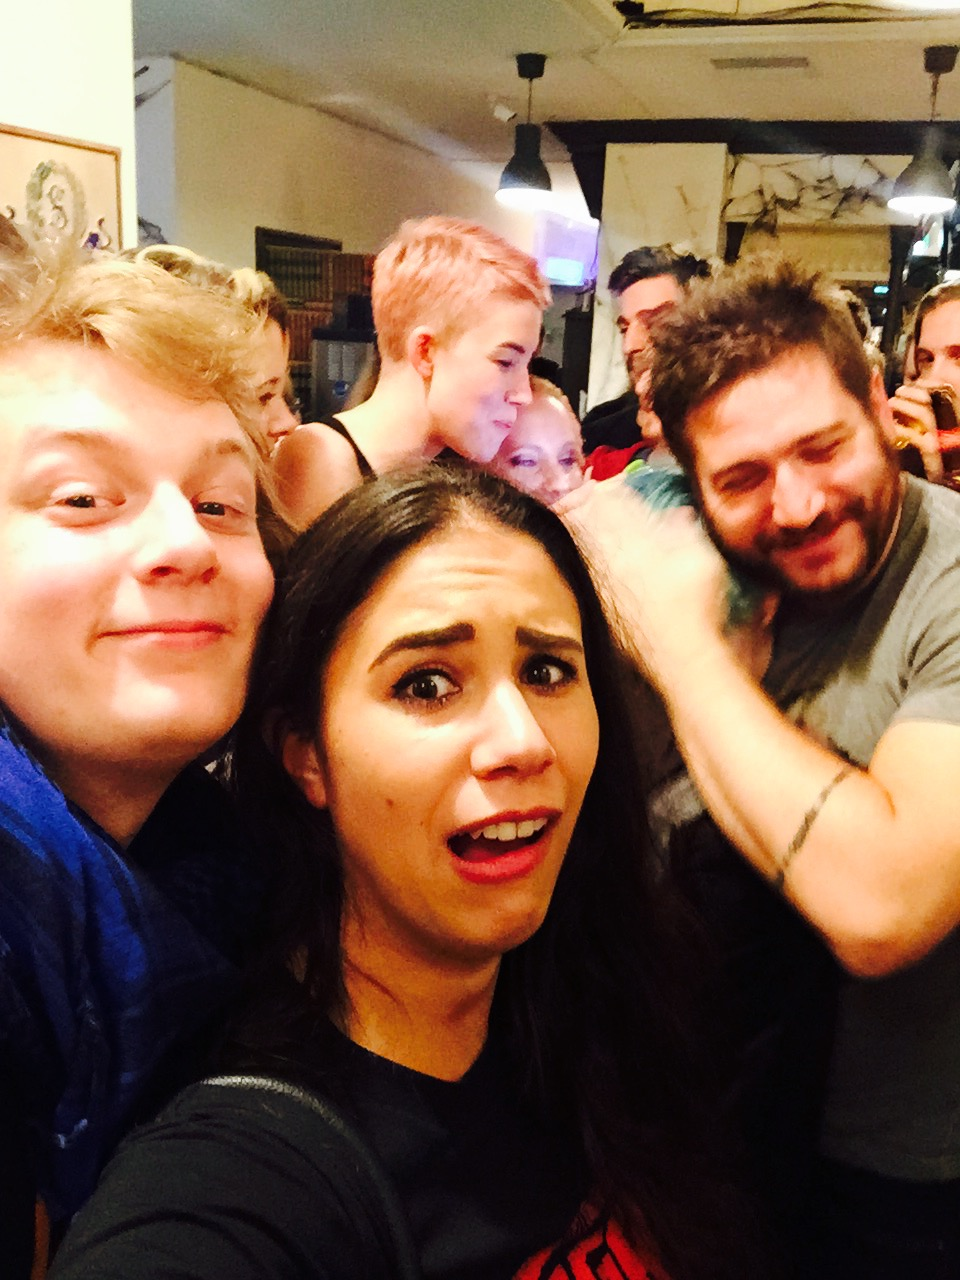 ... Adam Kovic hugging people and silly faces